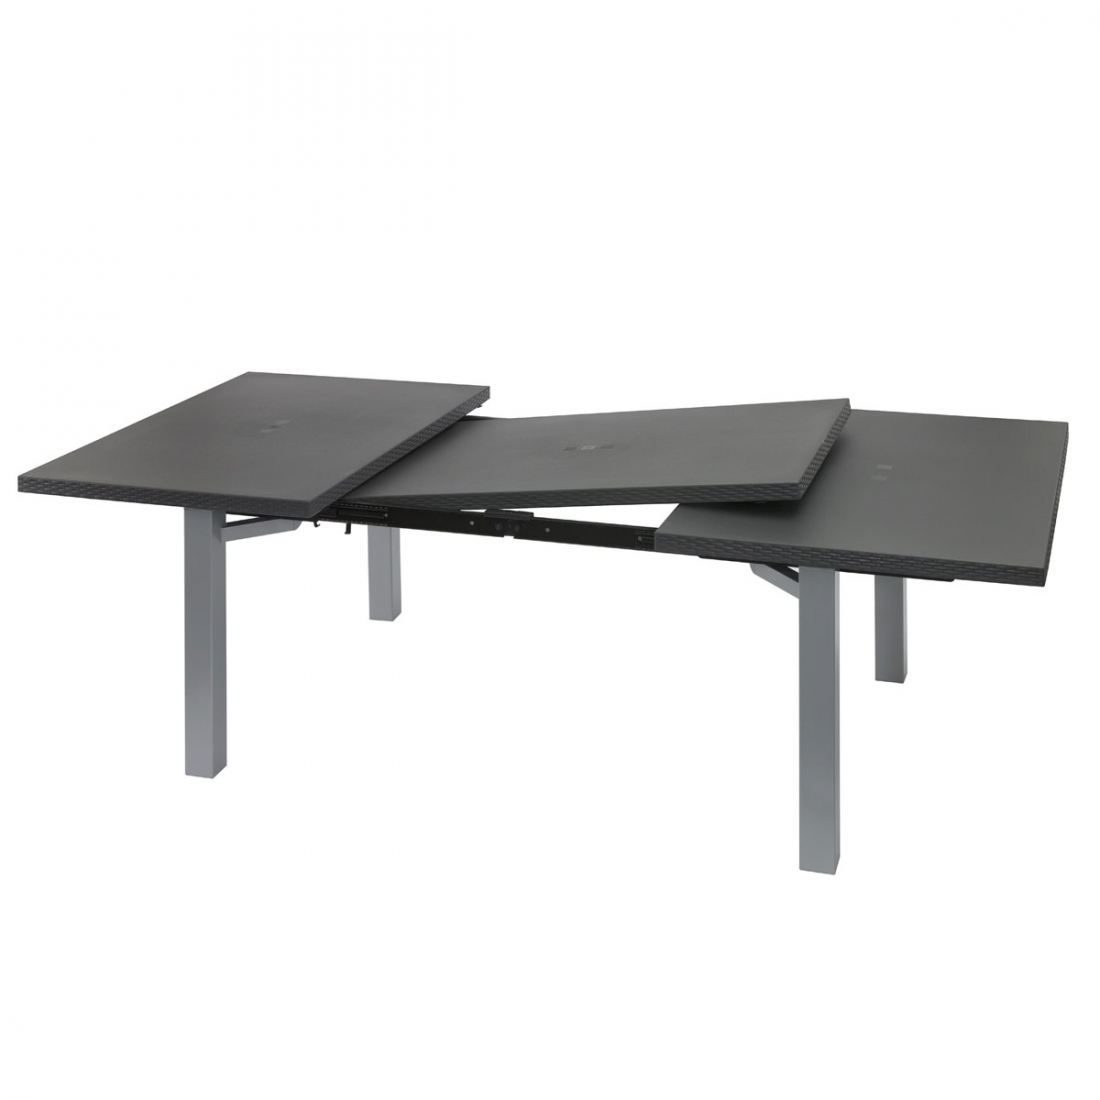 Table ext rieure extensible 100 240x120 ineo design grosfillex for Table 160 extensible